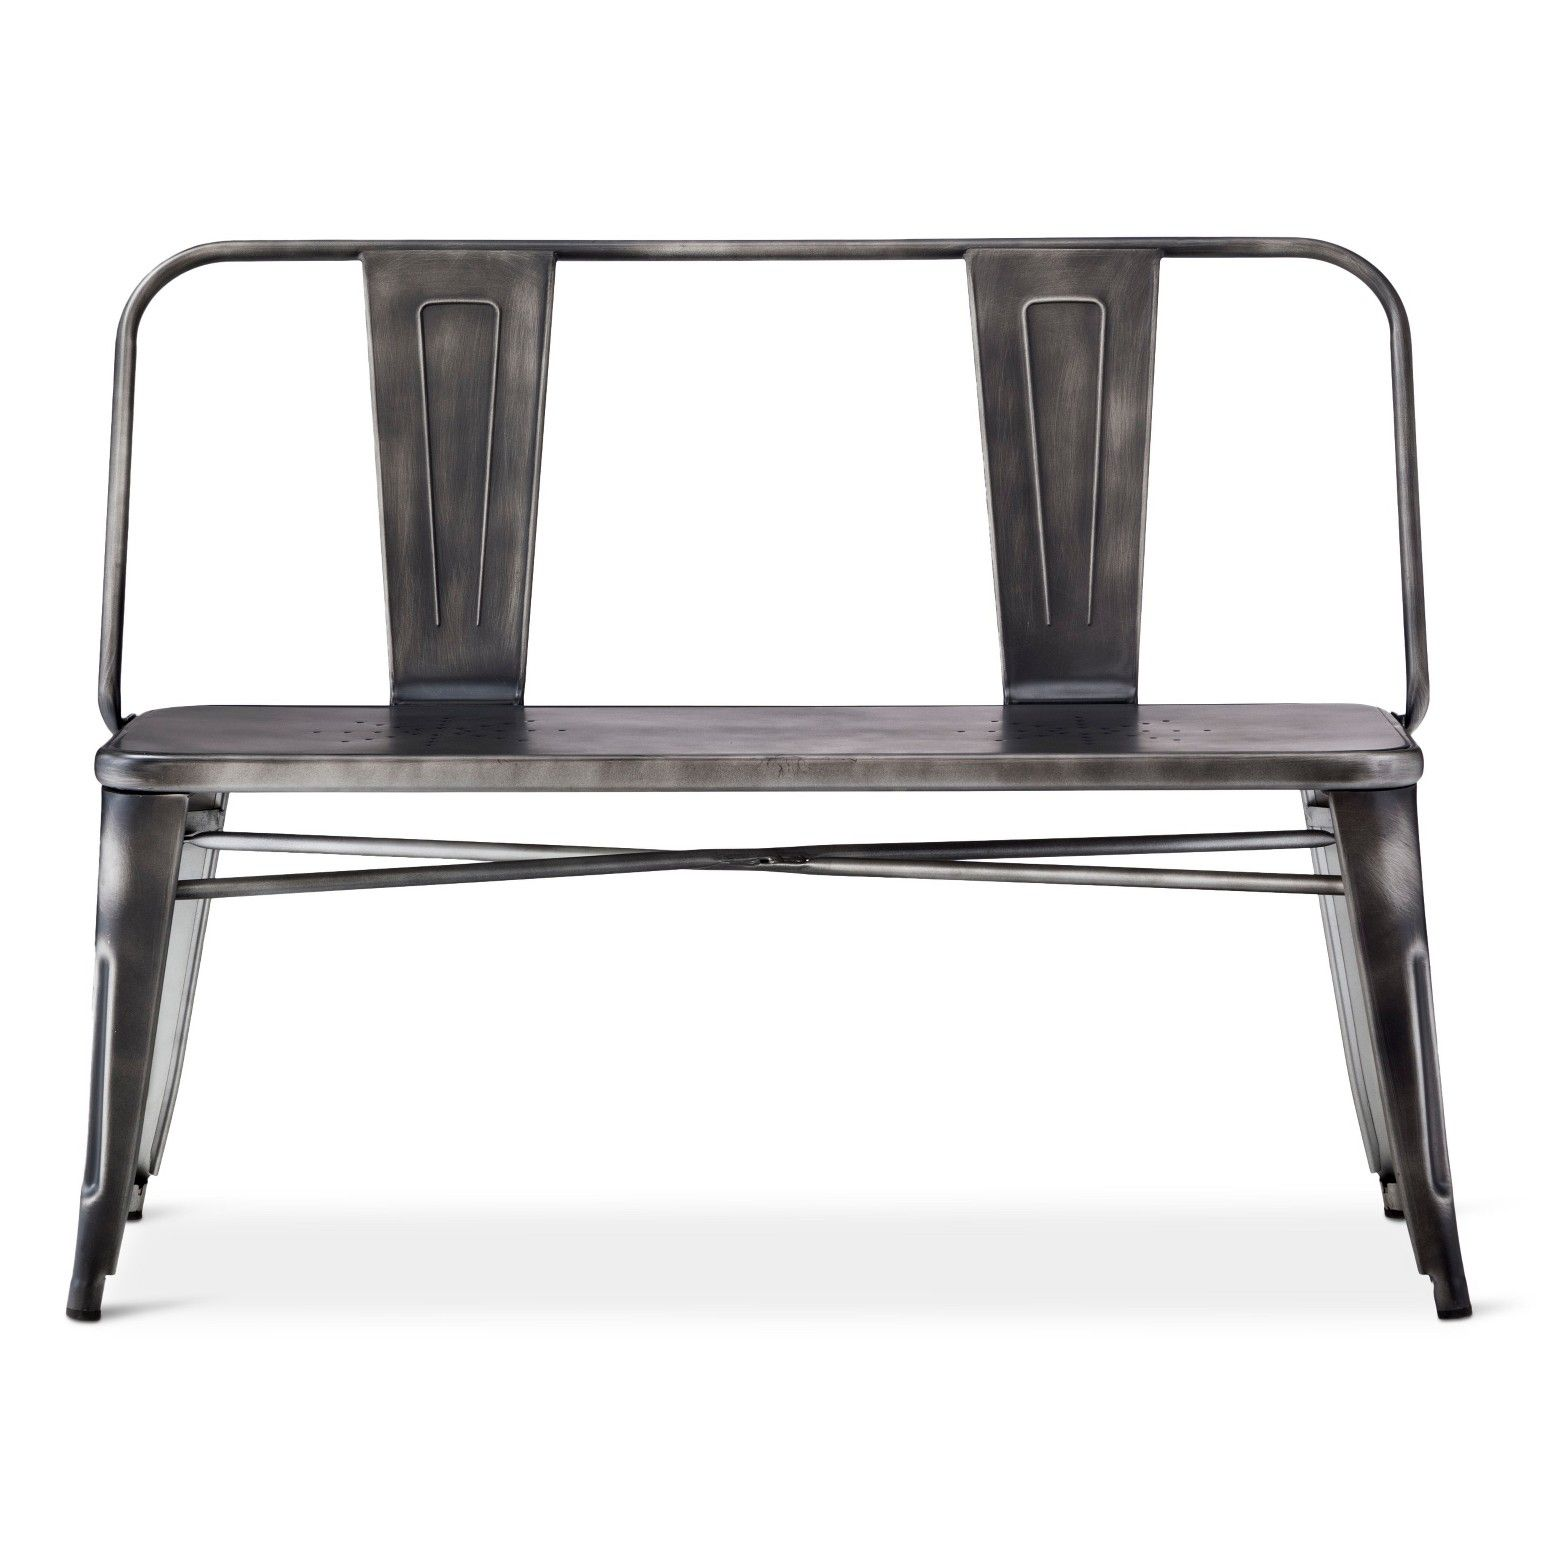 Distressed Metal Dining Bench Target 120 44 In Metal Dining Bench Dining Bench Metal Dining Room - Garden Furniture Clearance Hop Farm